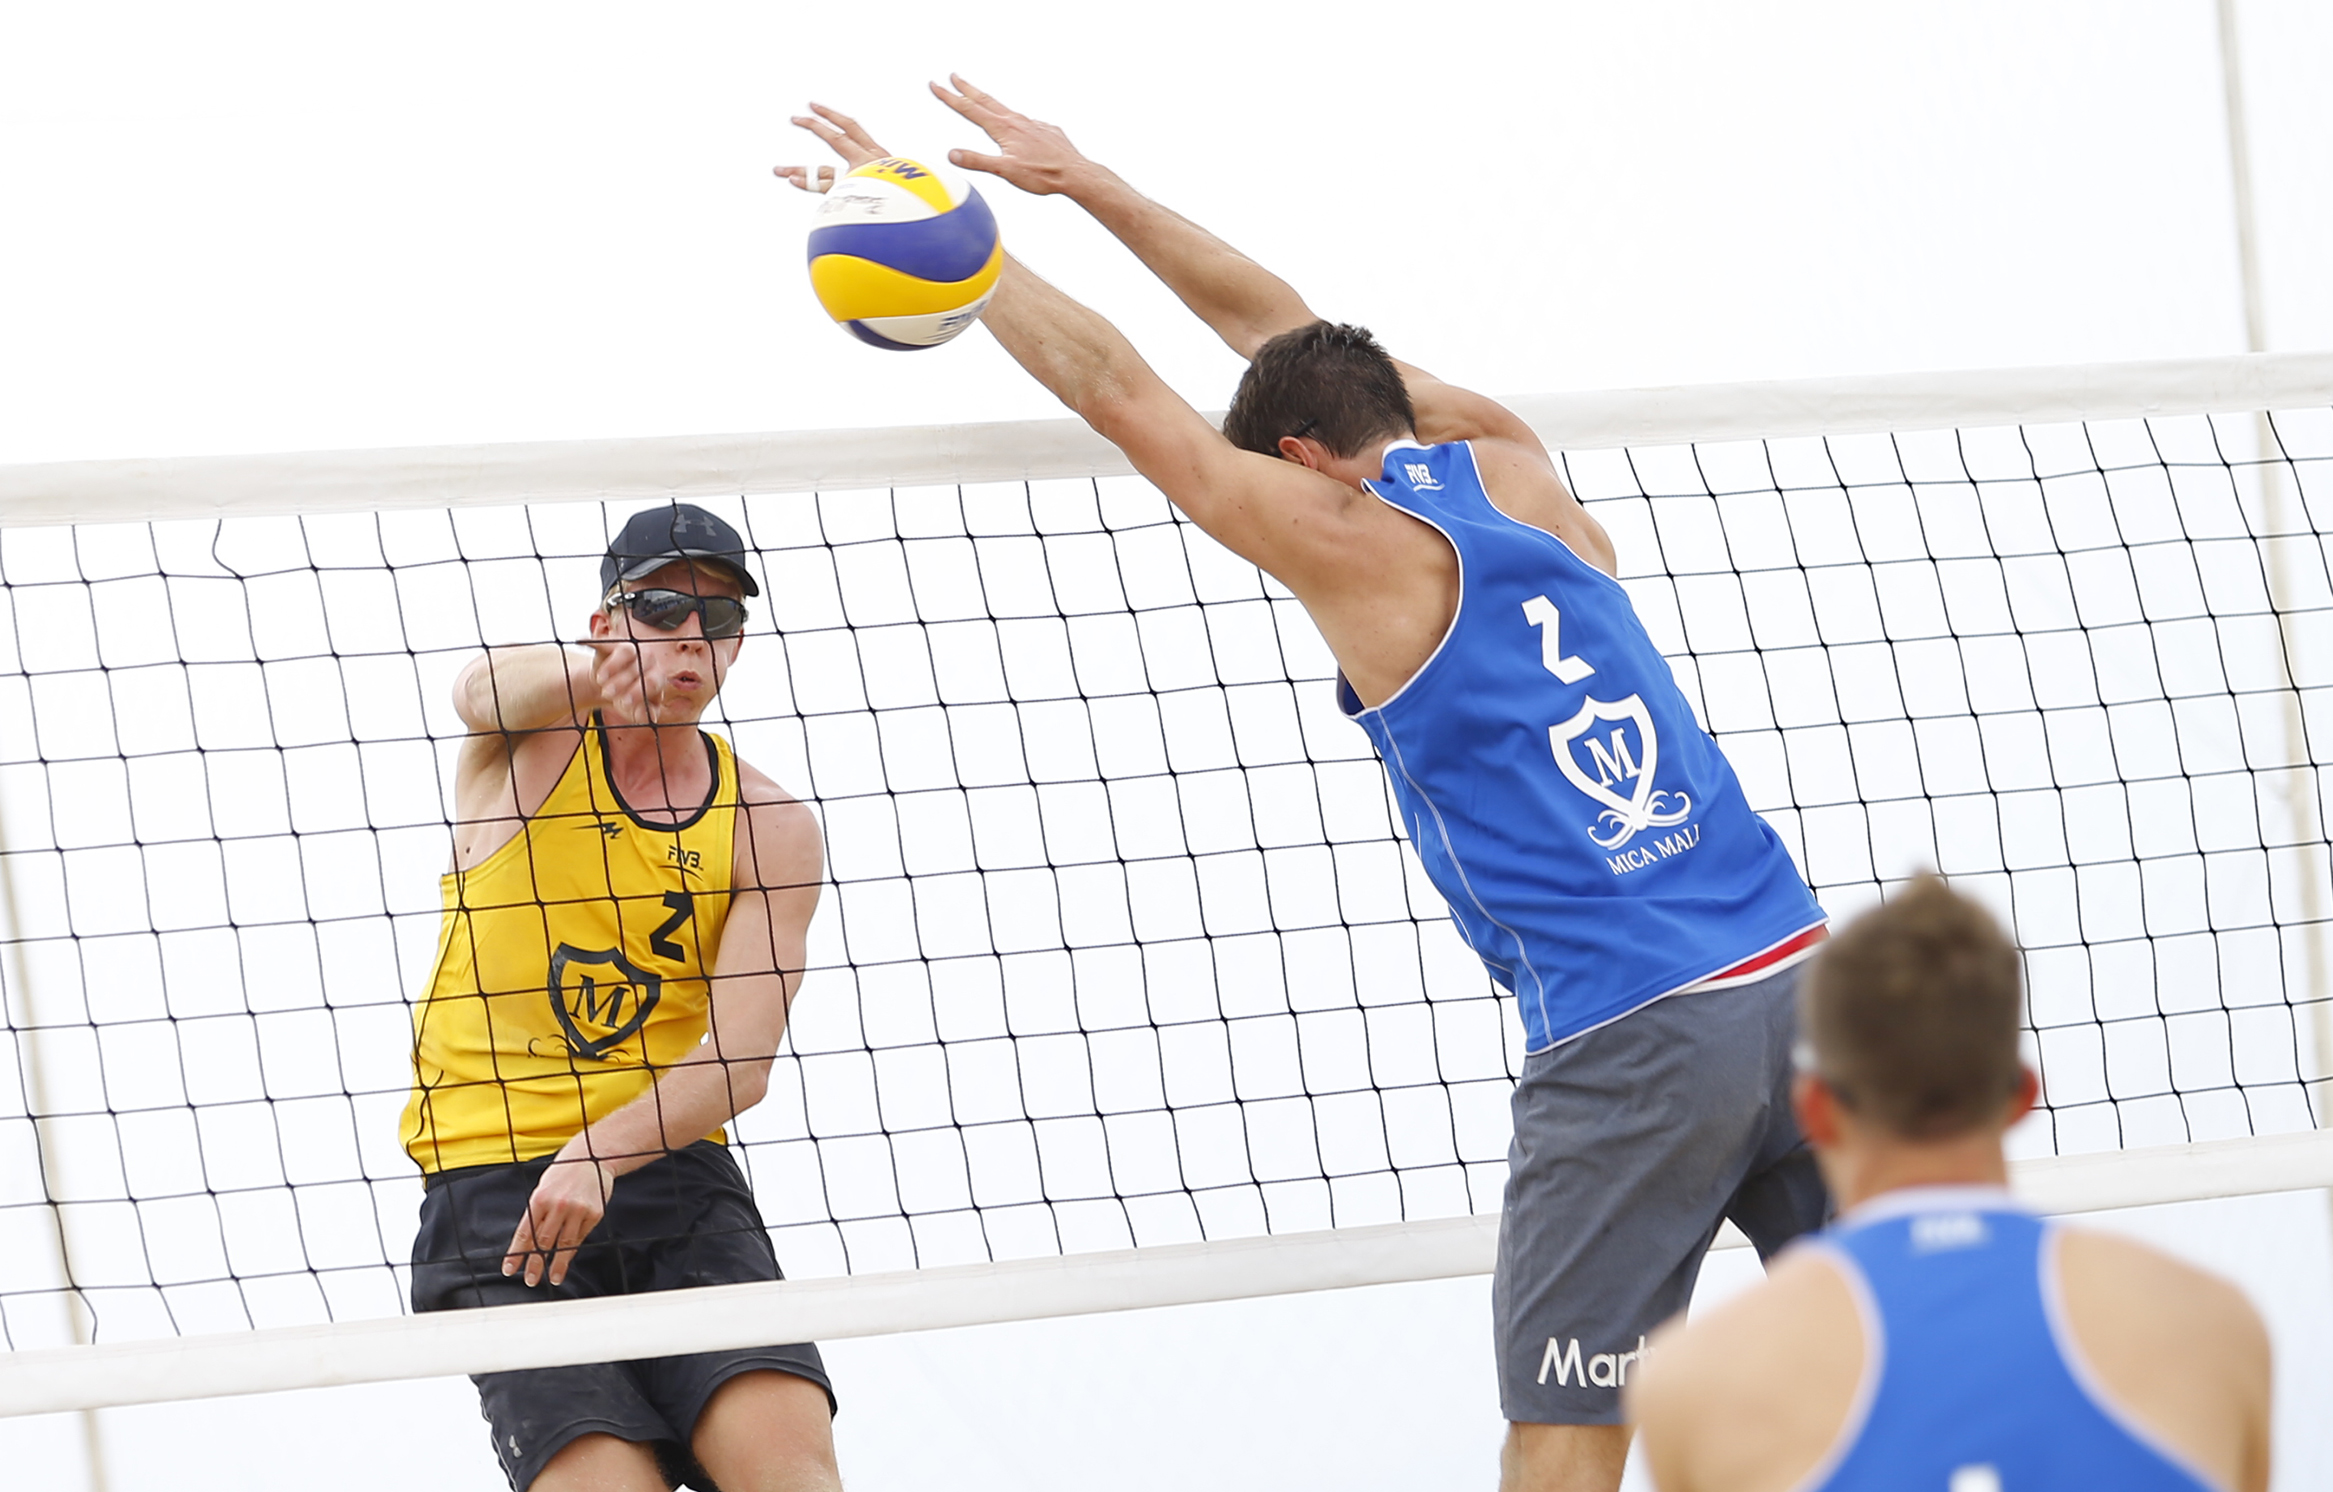 FIVB Beach Volleyball World Tour Kish Island 3STAR 2017